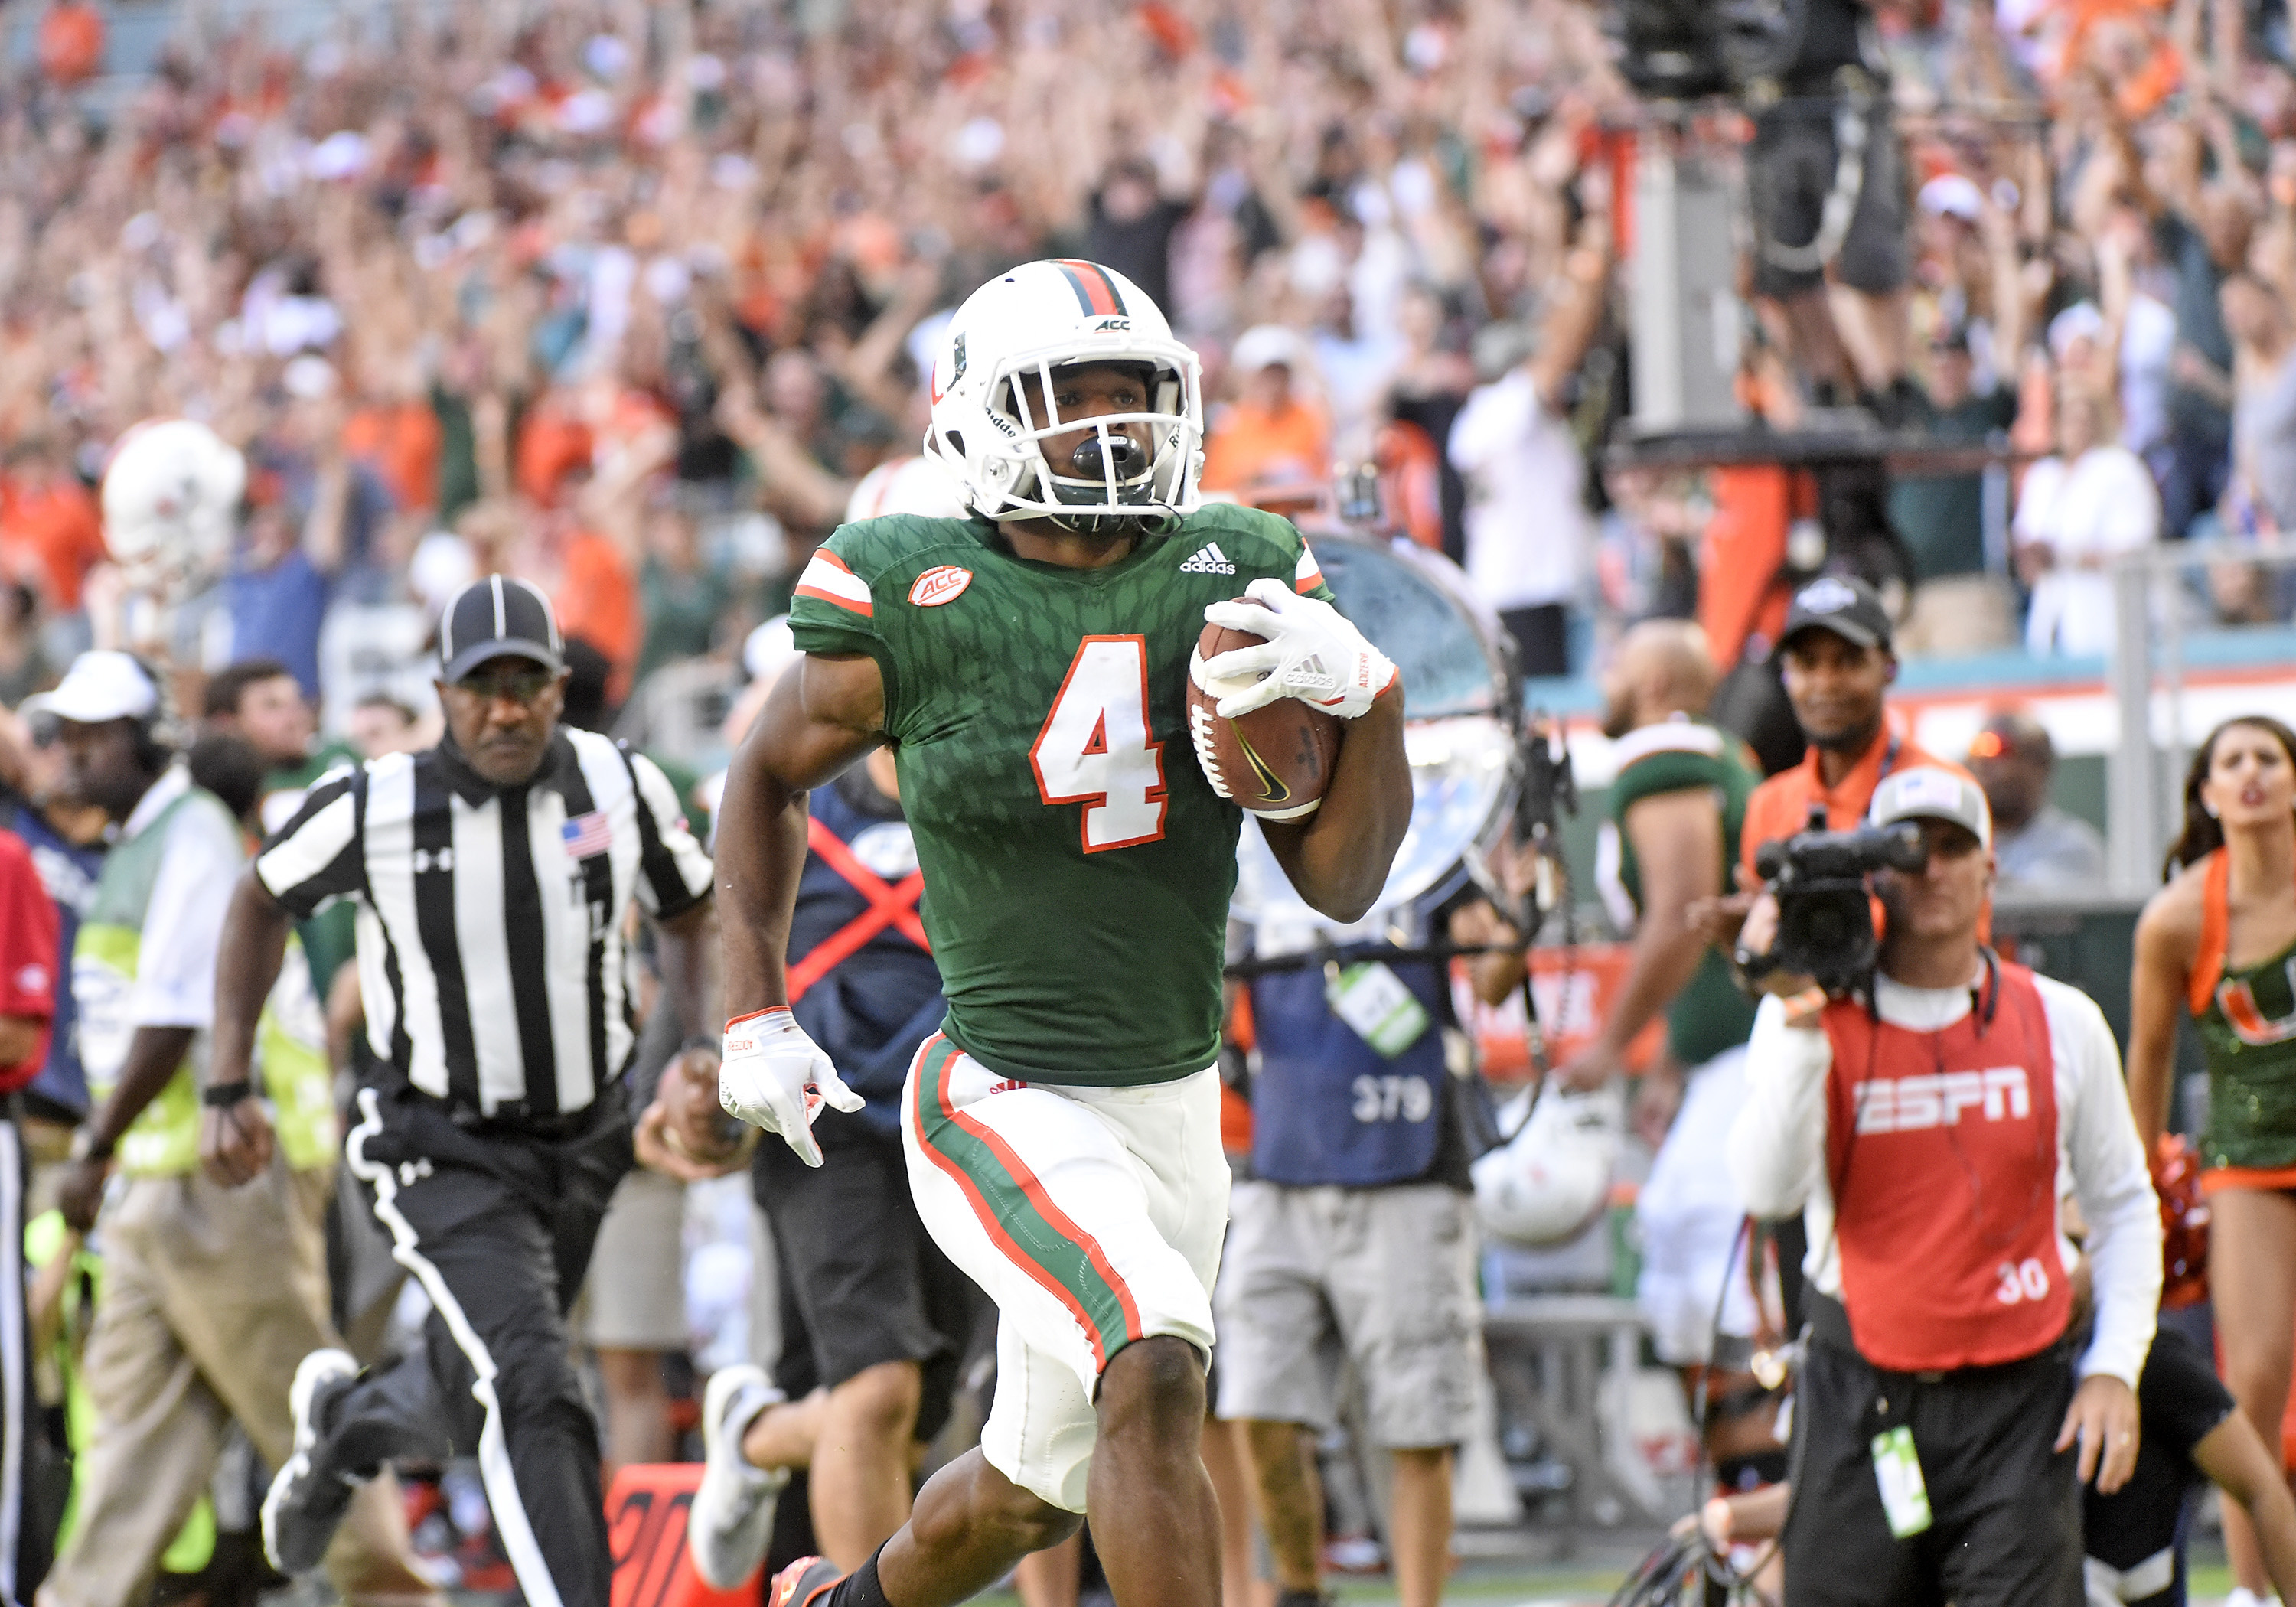 University of Miami defensive back Jaquan Johnson returns an interception for a score during a game against the University of Virginia on Nov. 18, 2017 at Hard Rock Stadium, in Miami